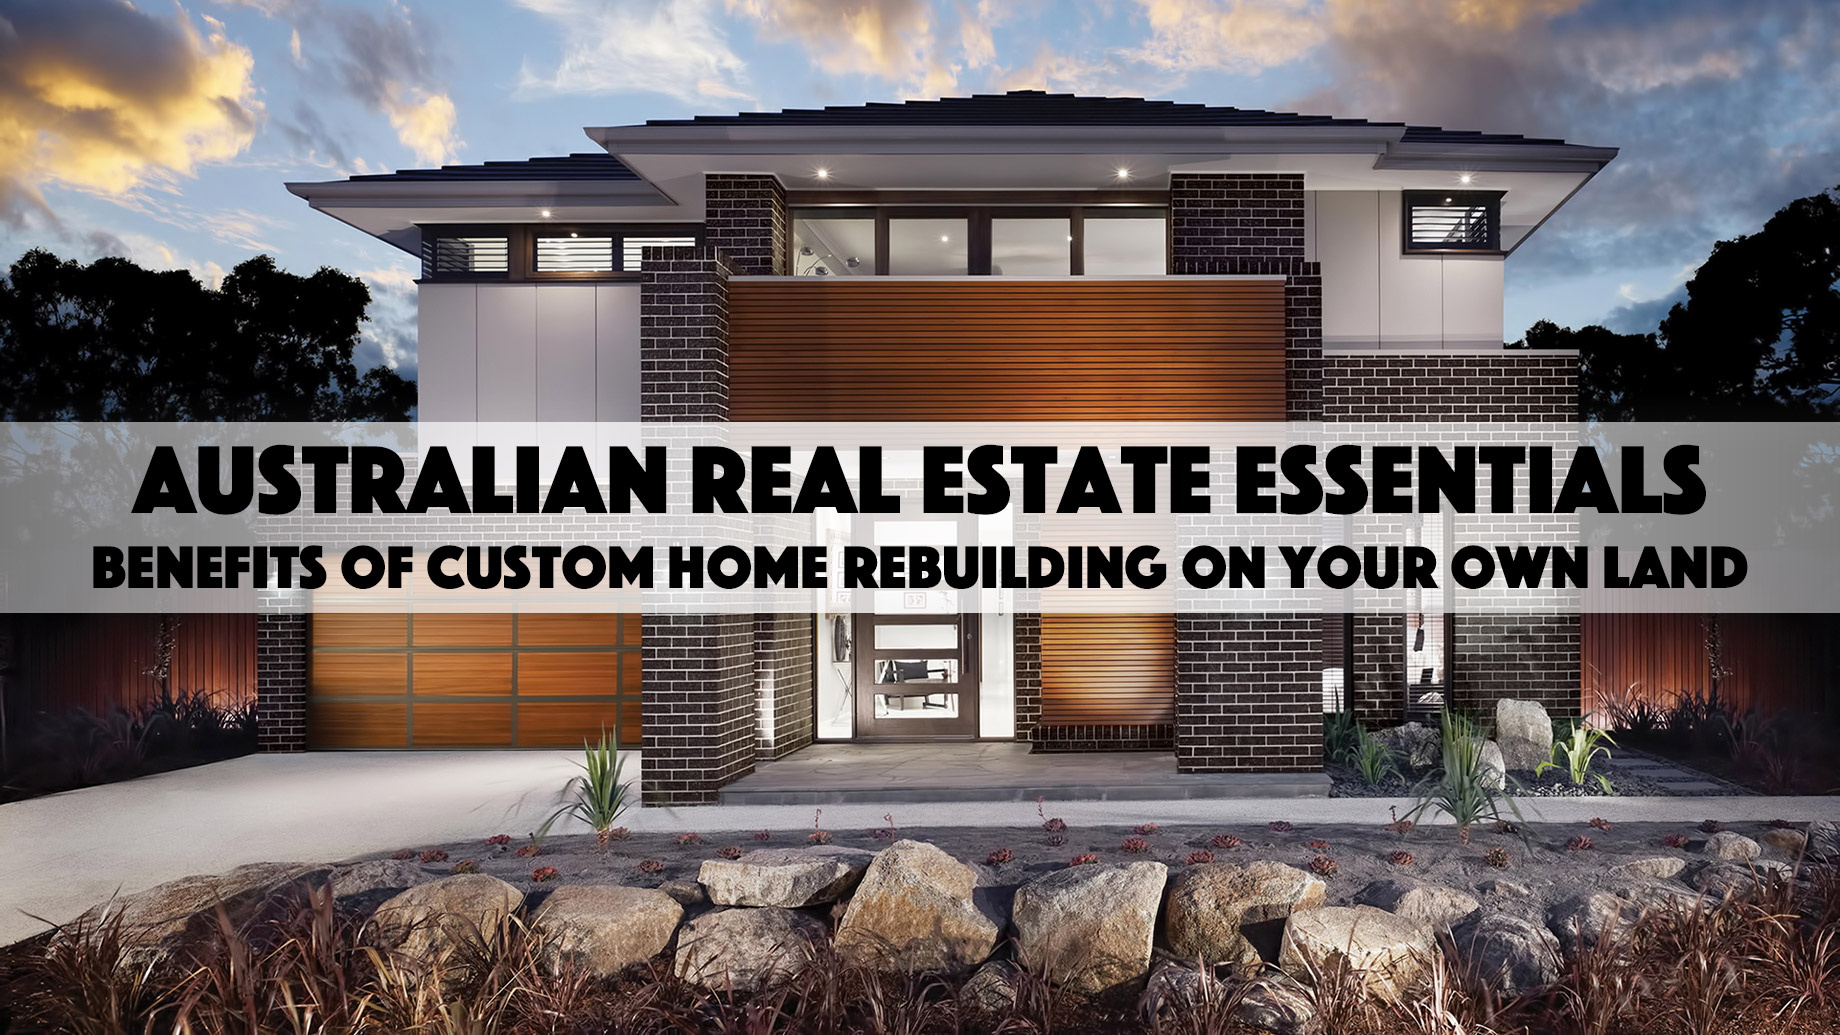 Australian Real Estate Essentials - Benefits of Custom Home Rebuilding on Your Own Land